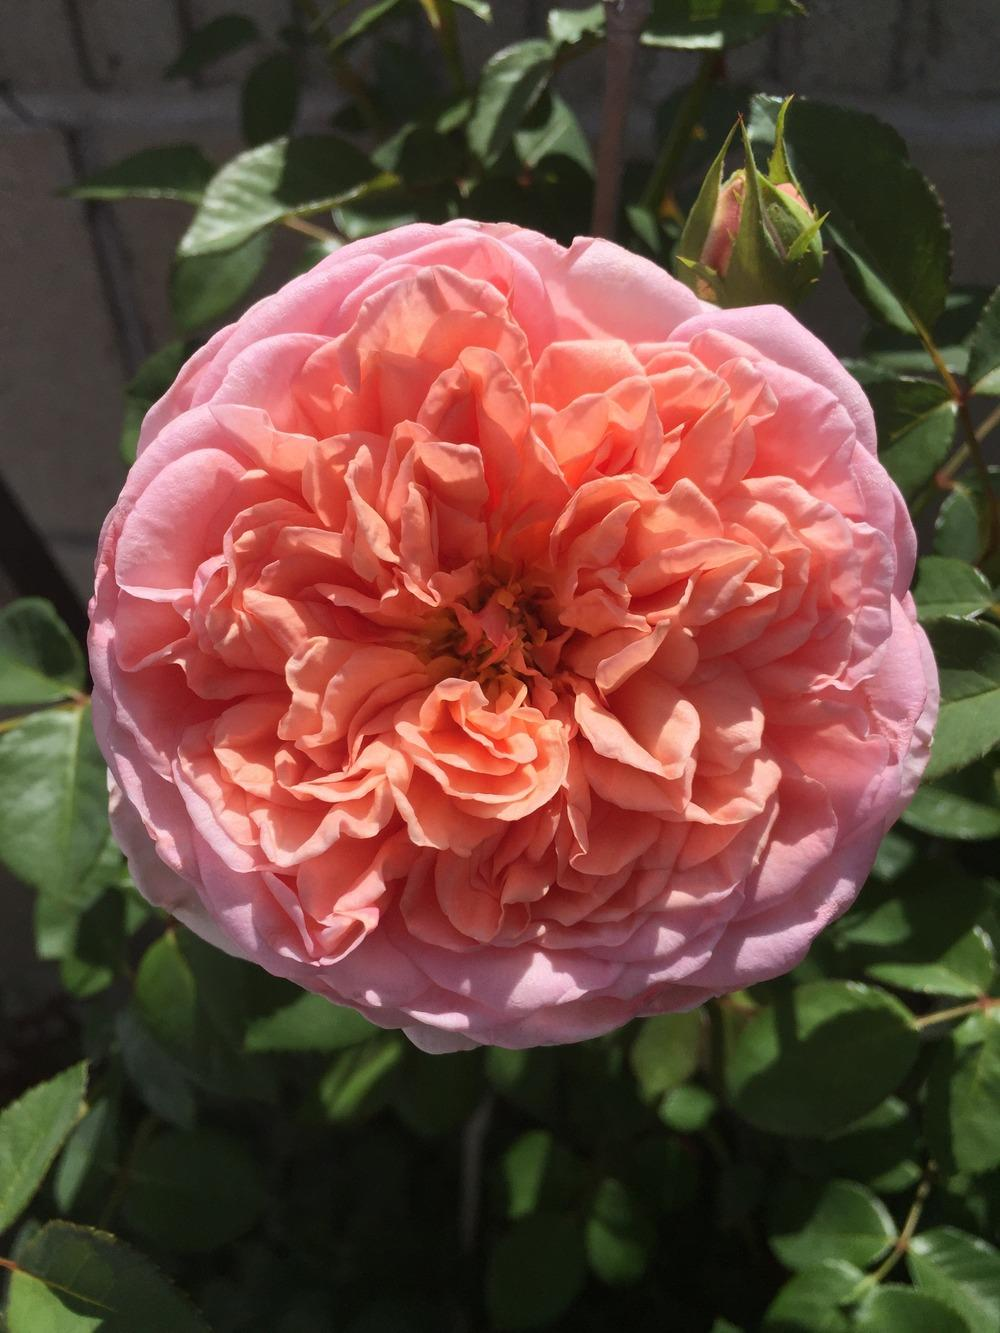 Photo of Rose (Rosa 'Abraham Darby') uploaded by mattmackay22